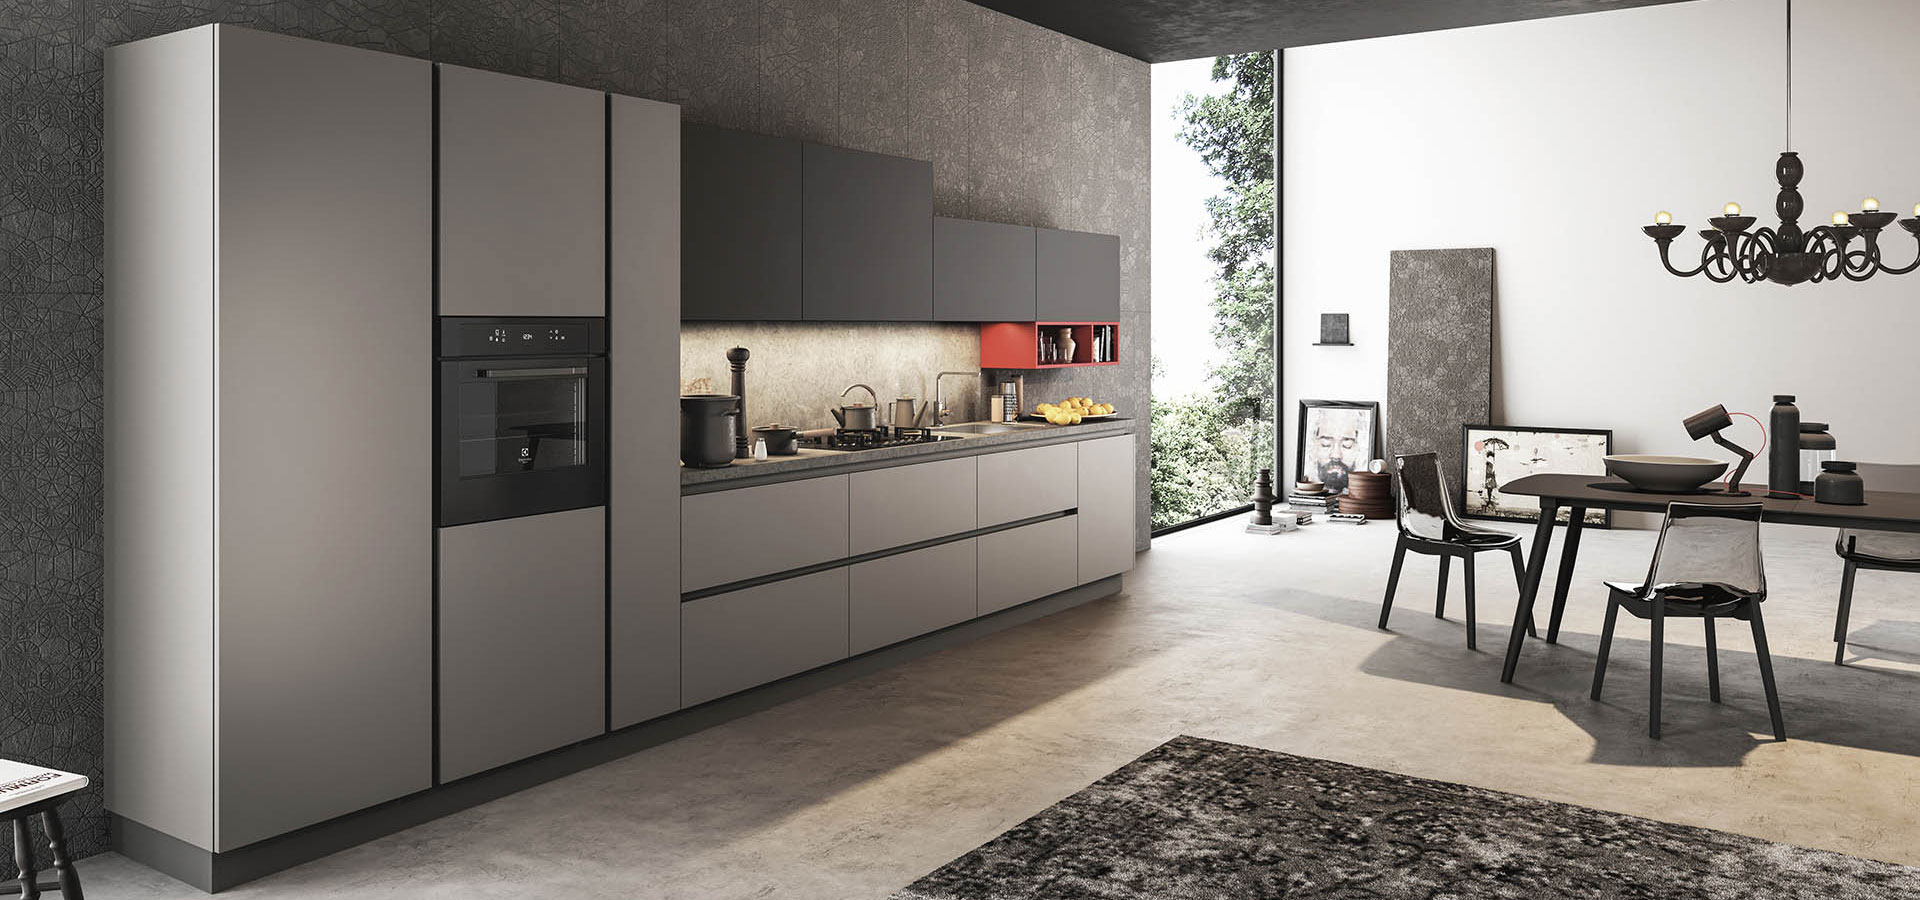 Outlet Cucine Lombardia. Abc Cucine U Riva In Outlet With Cucine ...